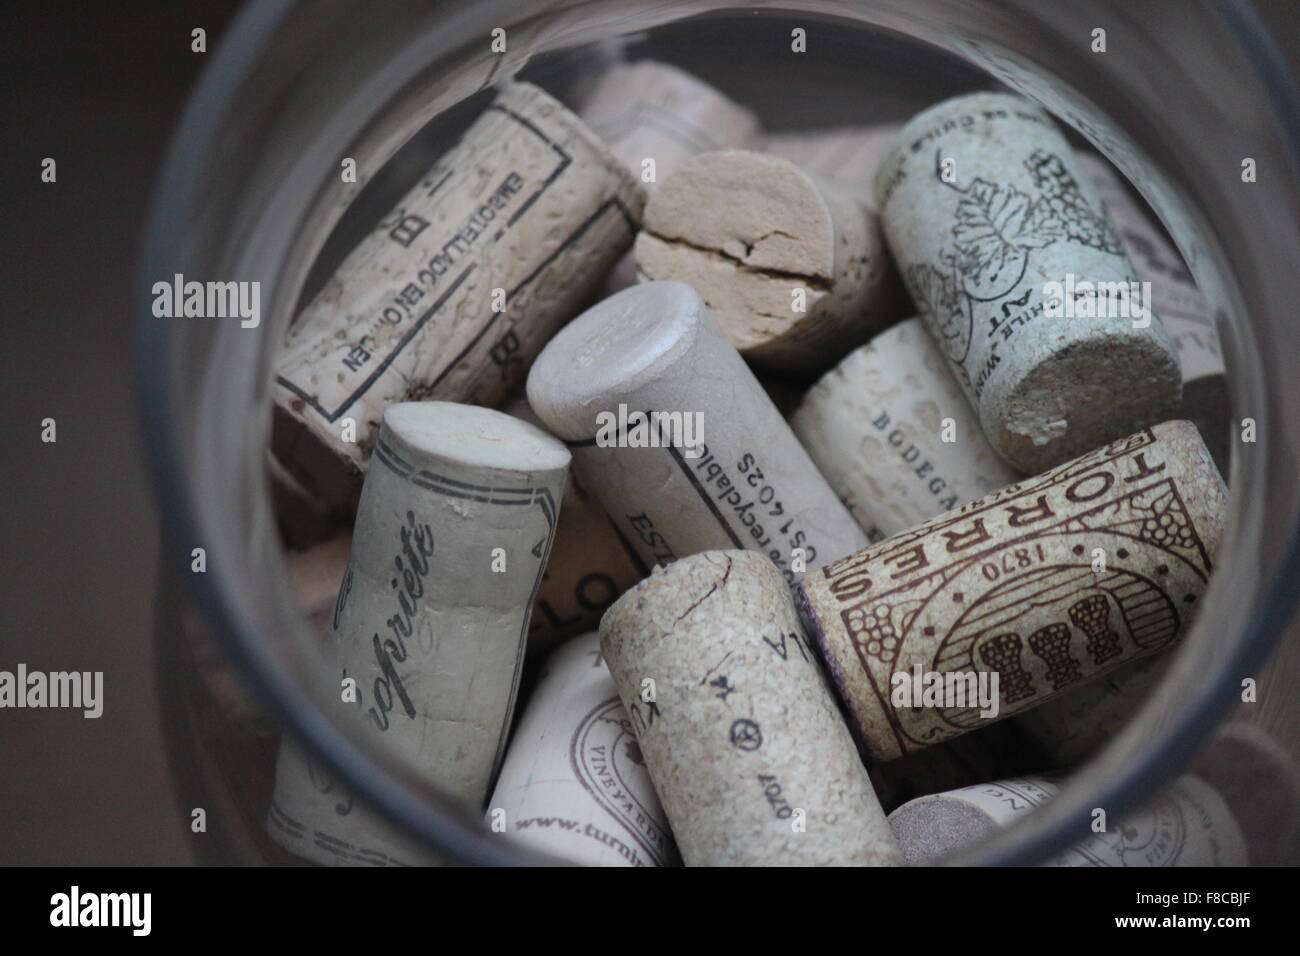 There is lot of wine stoppers. It reminds on good evenings with family and friends. - Stock Image